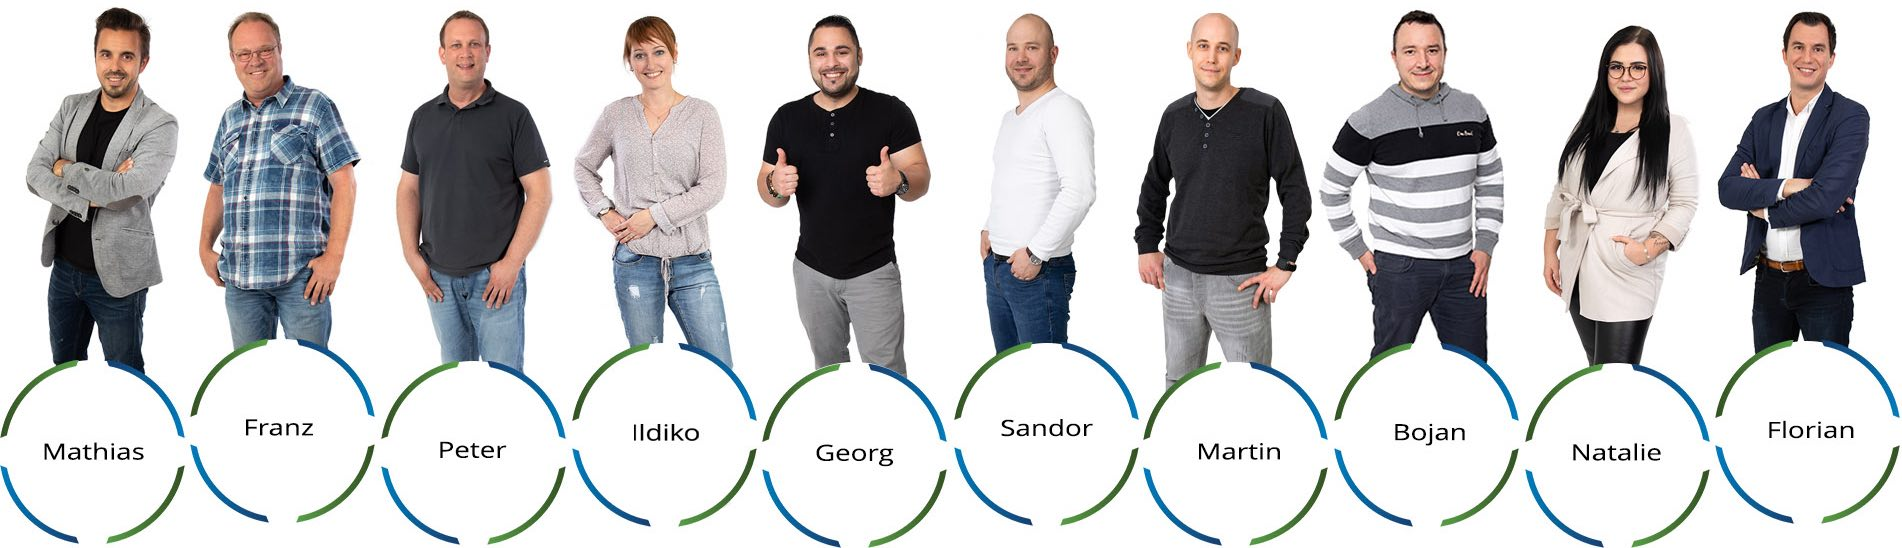 Team Südostcargo